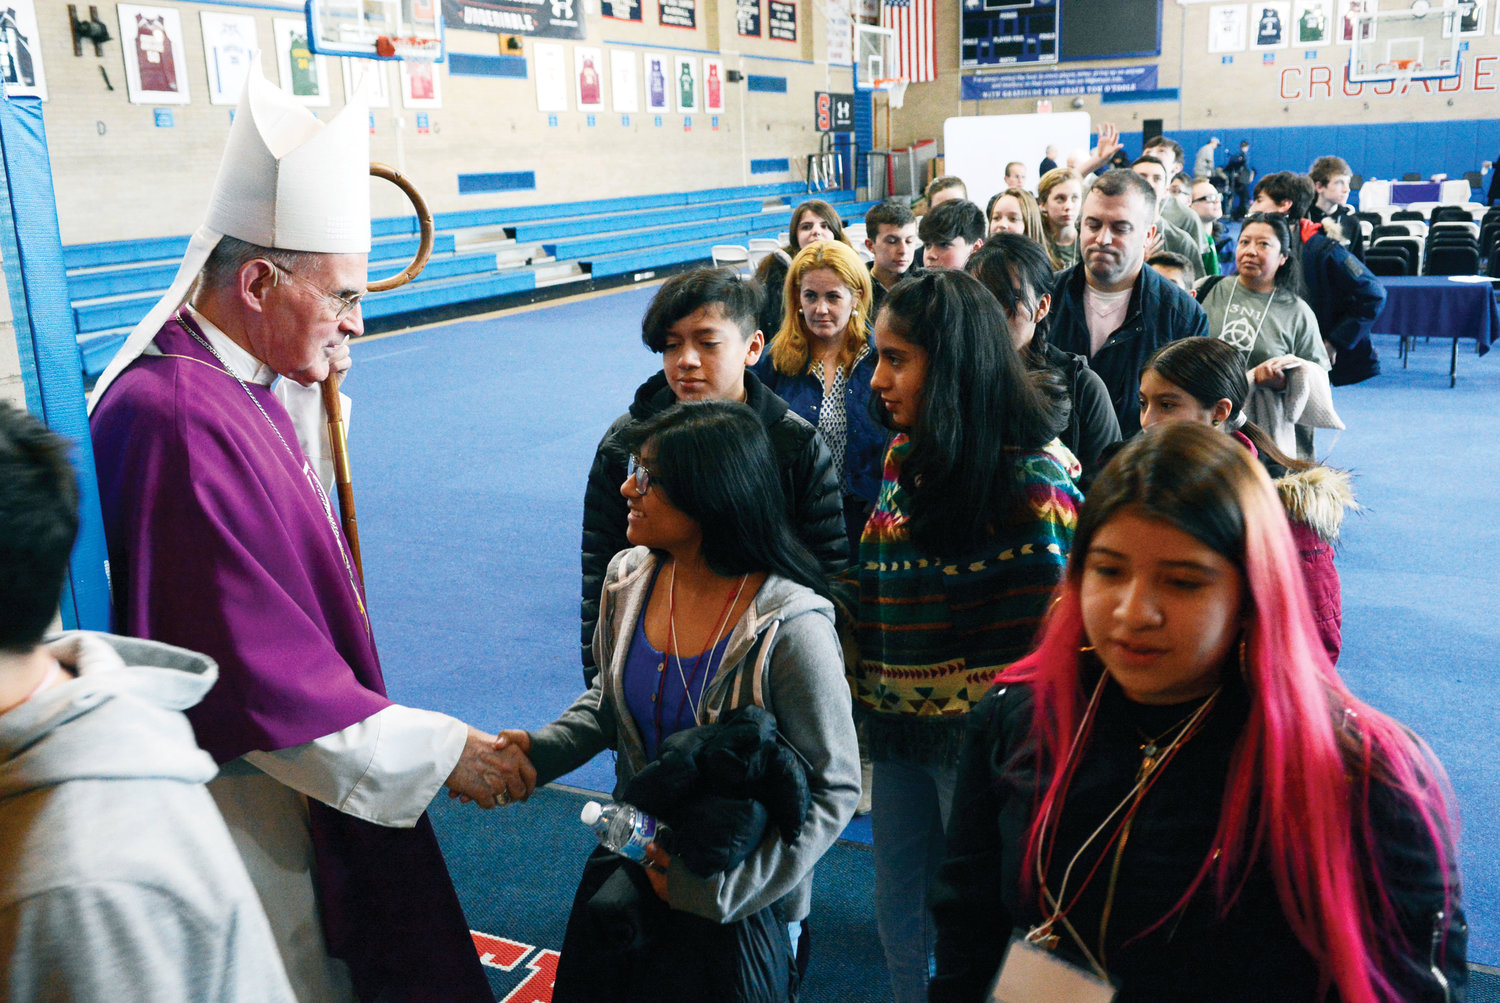 Retired Auxiliary Bishop Gerald Walsh, the principal celebrant, greets students after the closing Mass.